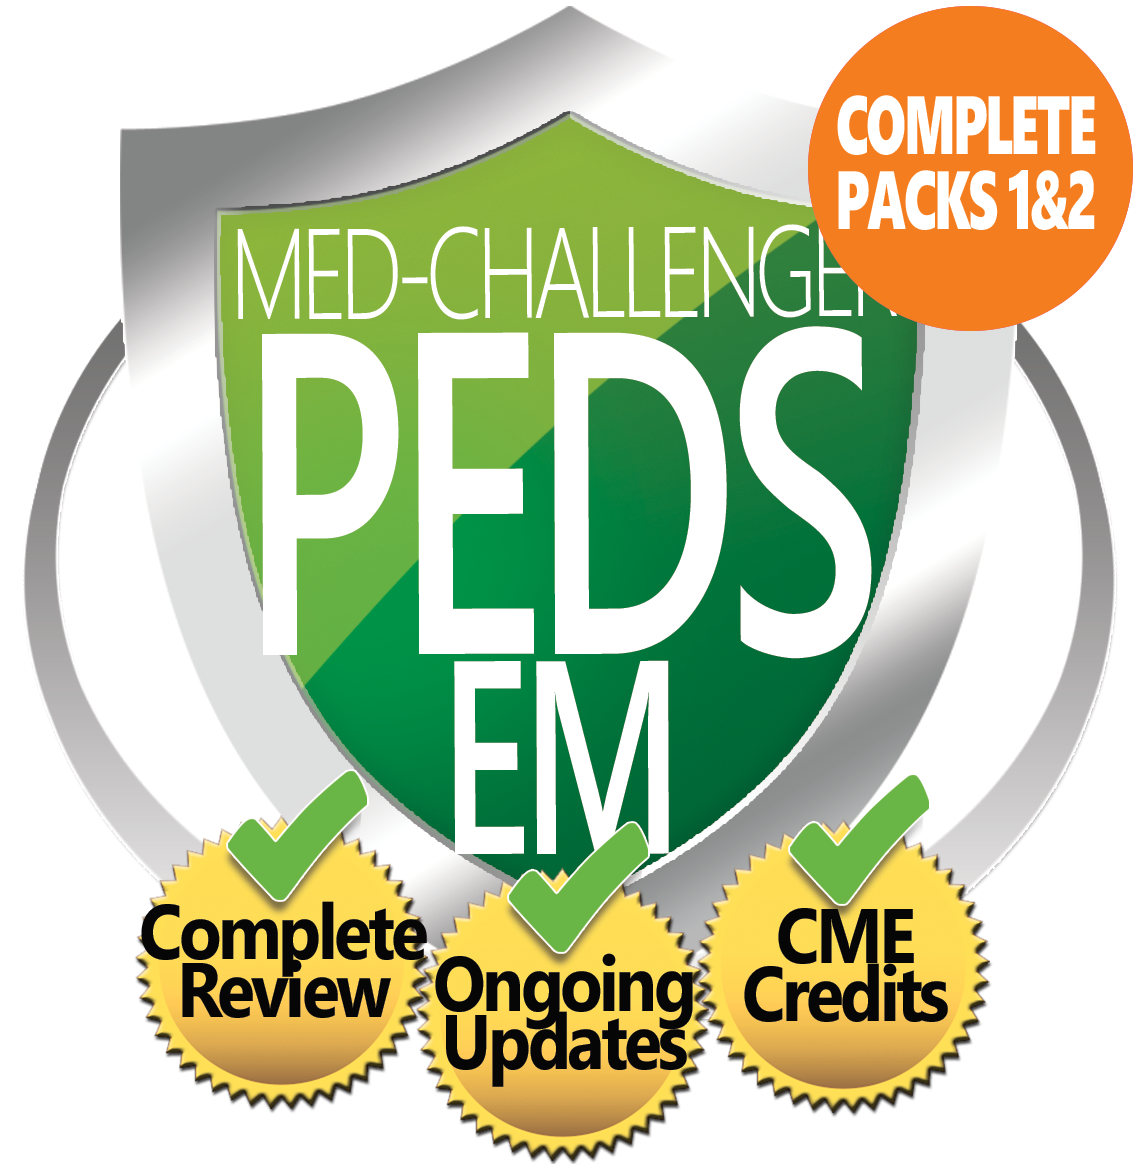 Pediatric Emergency Medicine Board Review, Med-Challenger EM Pediatrics, Complete Review, Ongoing Updates, CME Credits